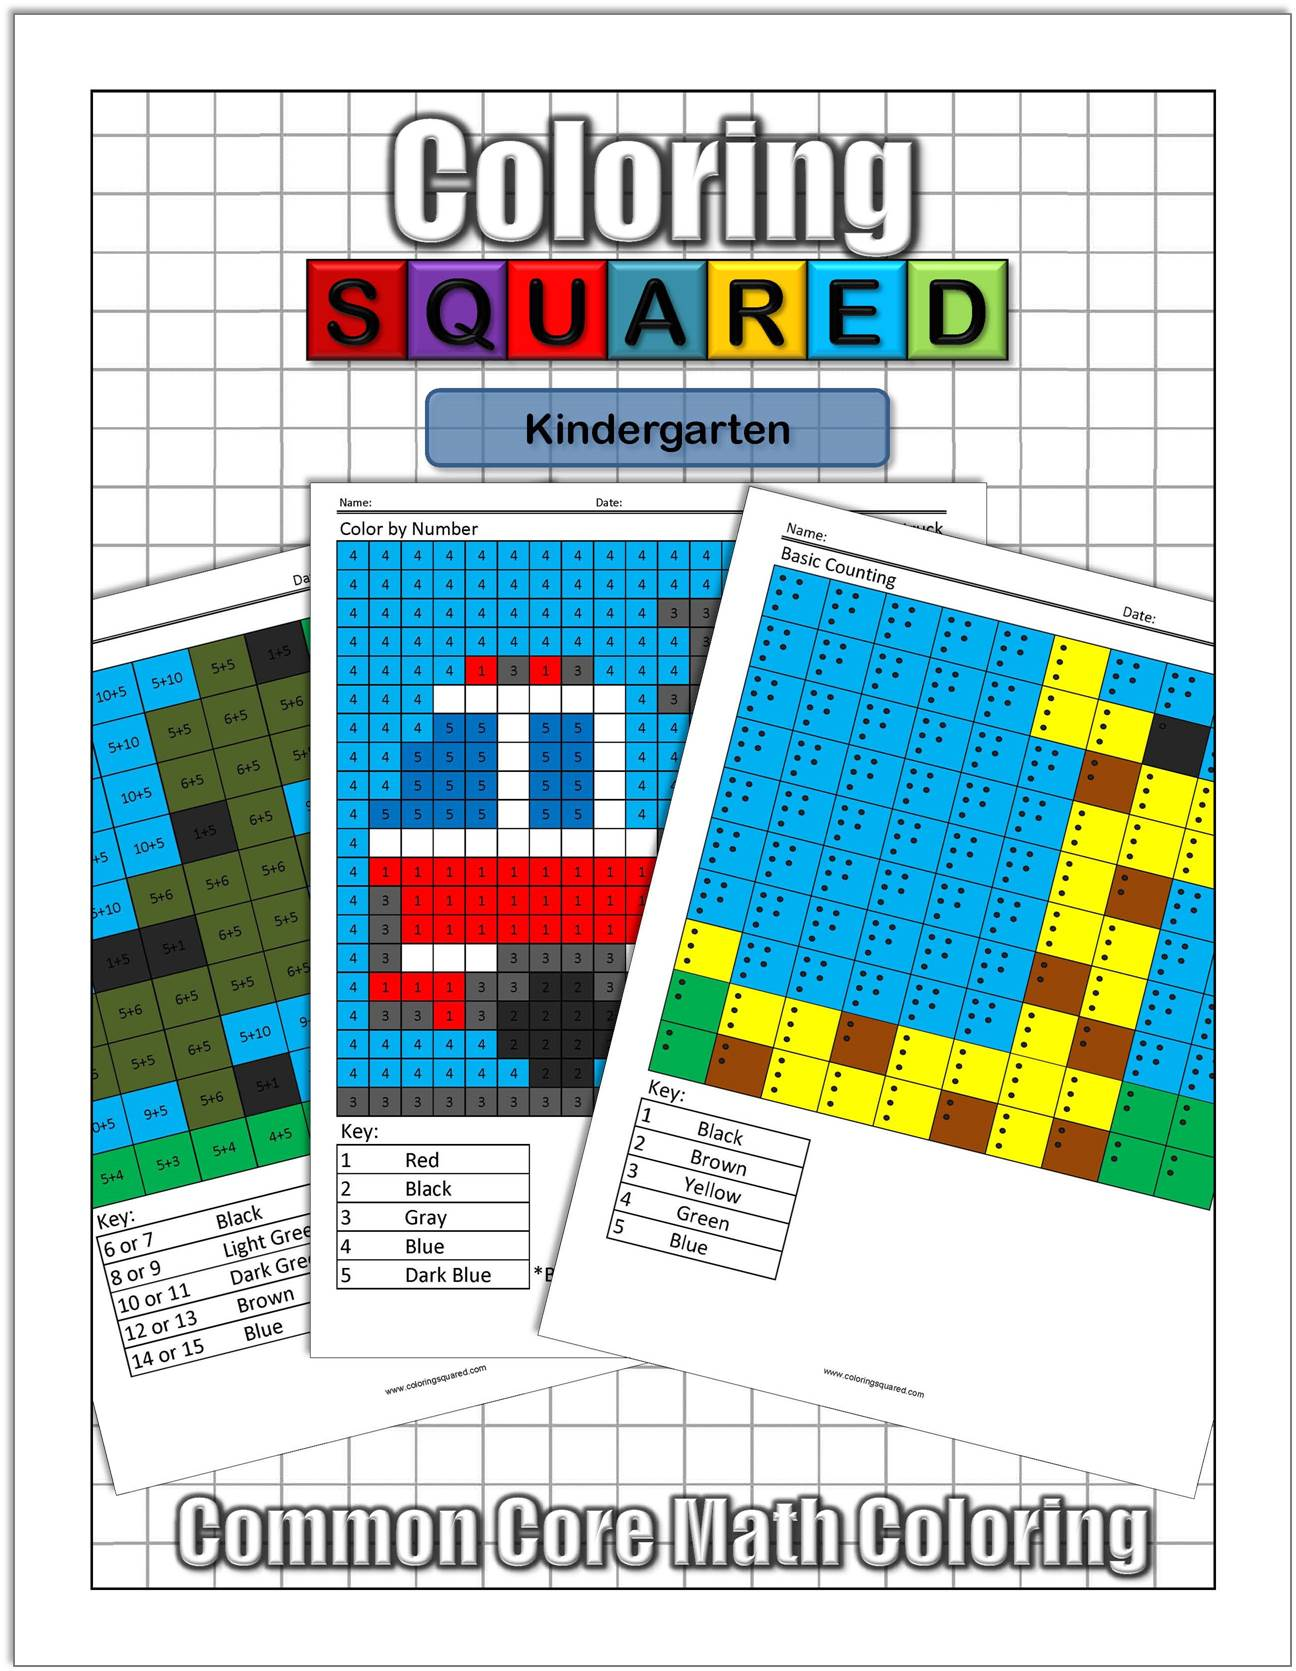 Product Images - Coloring Squared